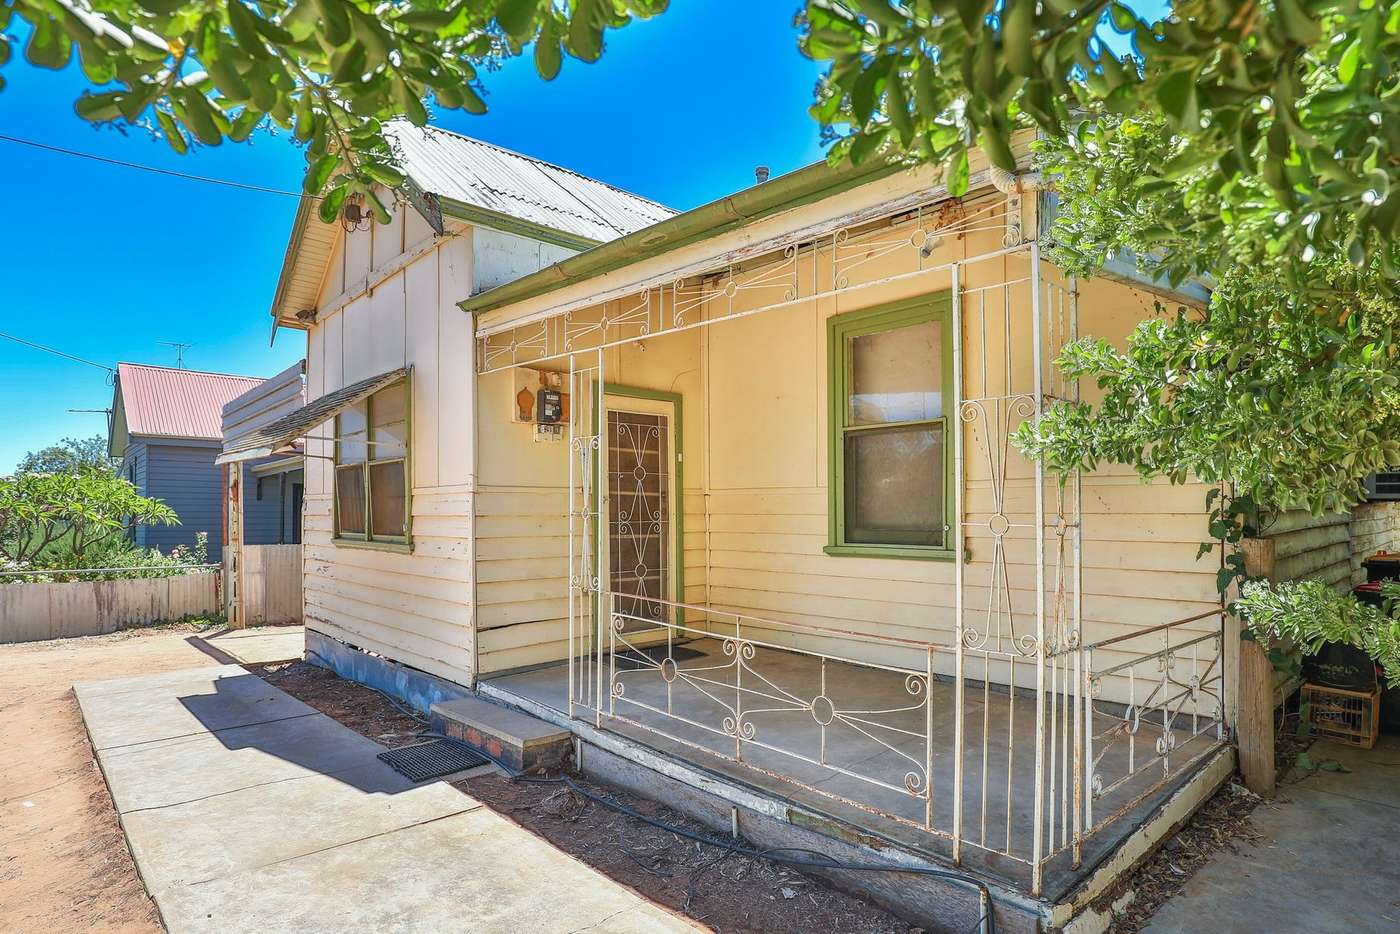 Main view of Homely house listing, 3 Commercial Street, Merbein VIC 3505